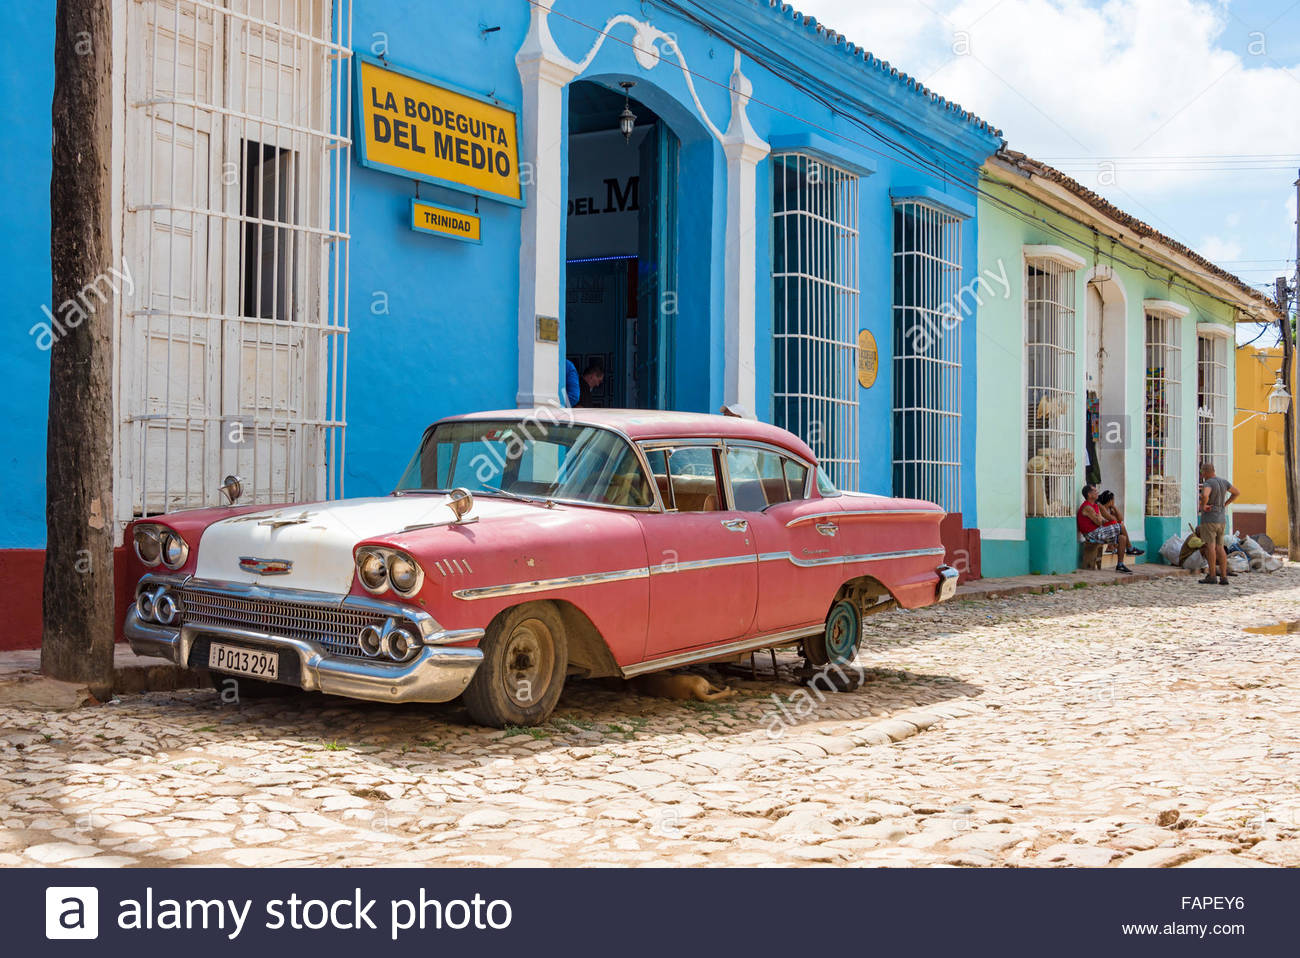 La Bodeguita del Medio in Trinidad,Cuba. The landmark is a popular bar and restaurant in the Unesco World Heritage - Stock Image